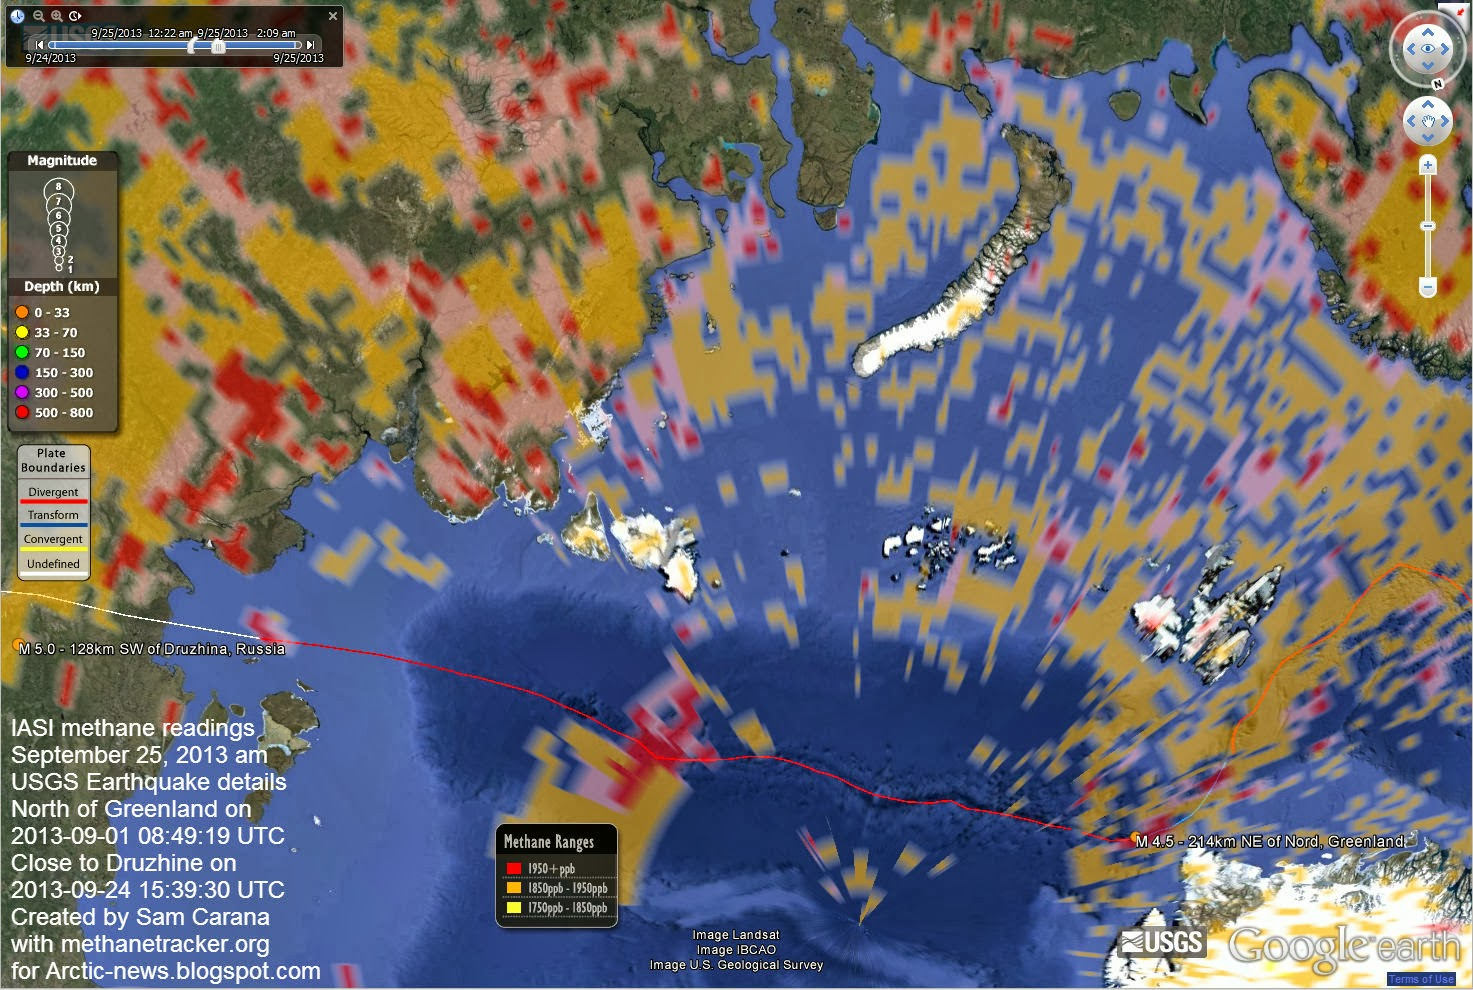 Arctic News Methane Release Caused By Earthquakes